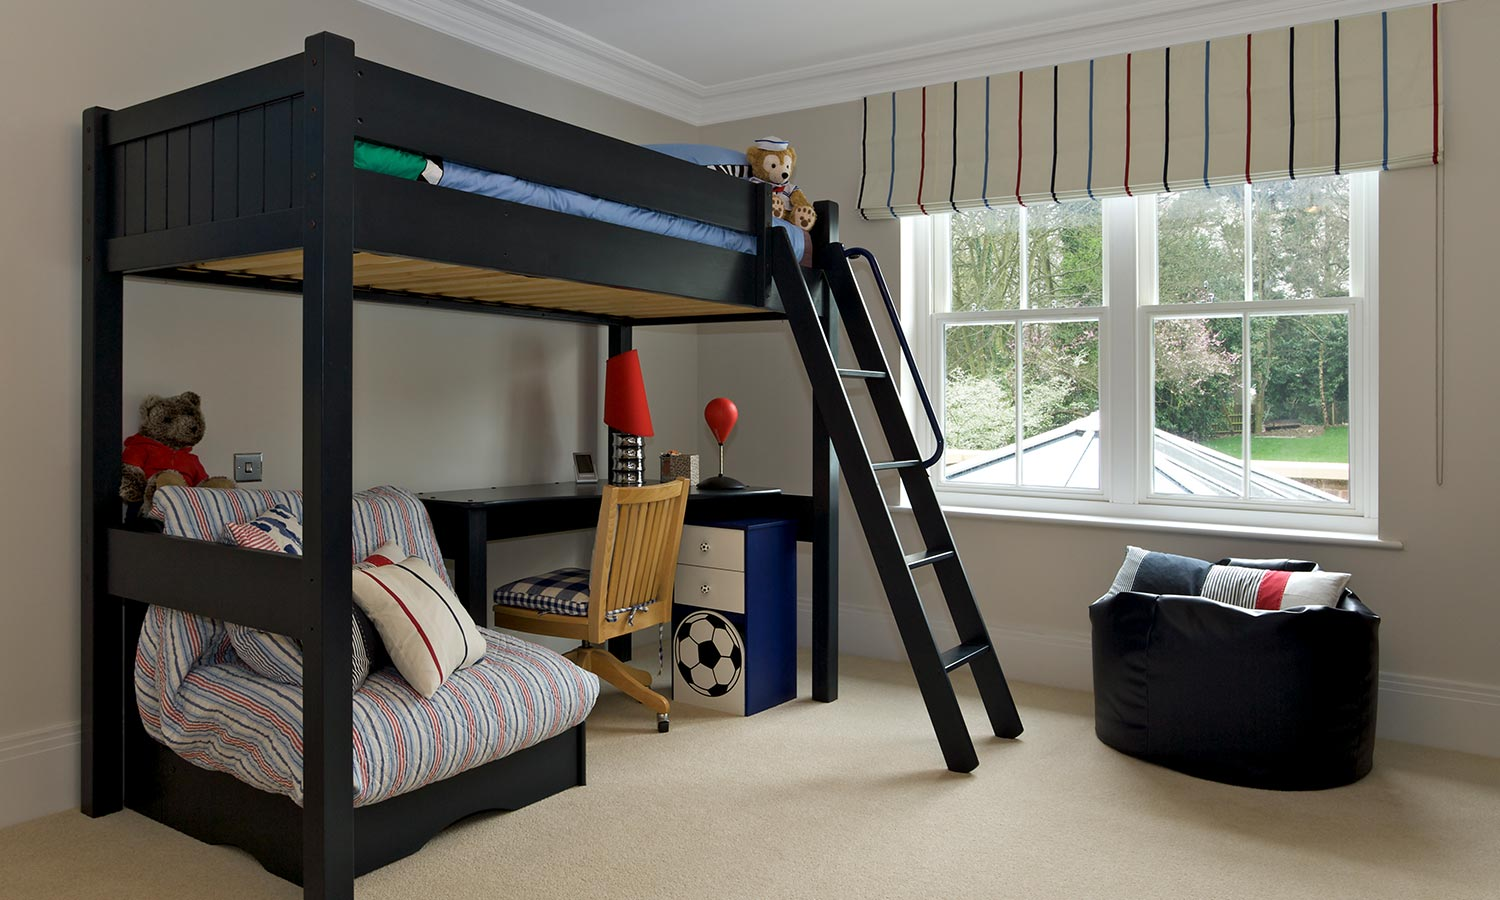 A lofted bunk bed with desk underneath